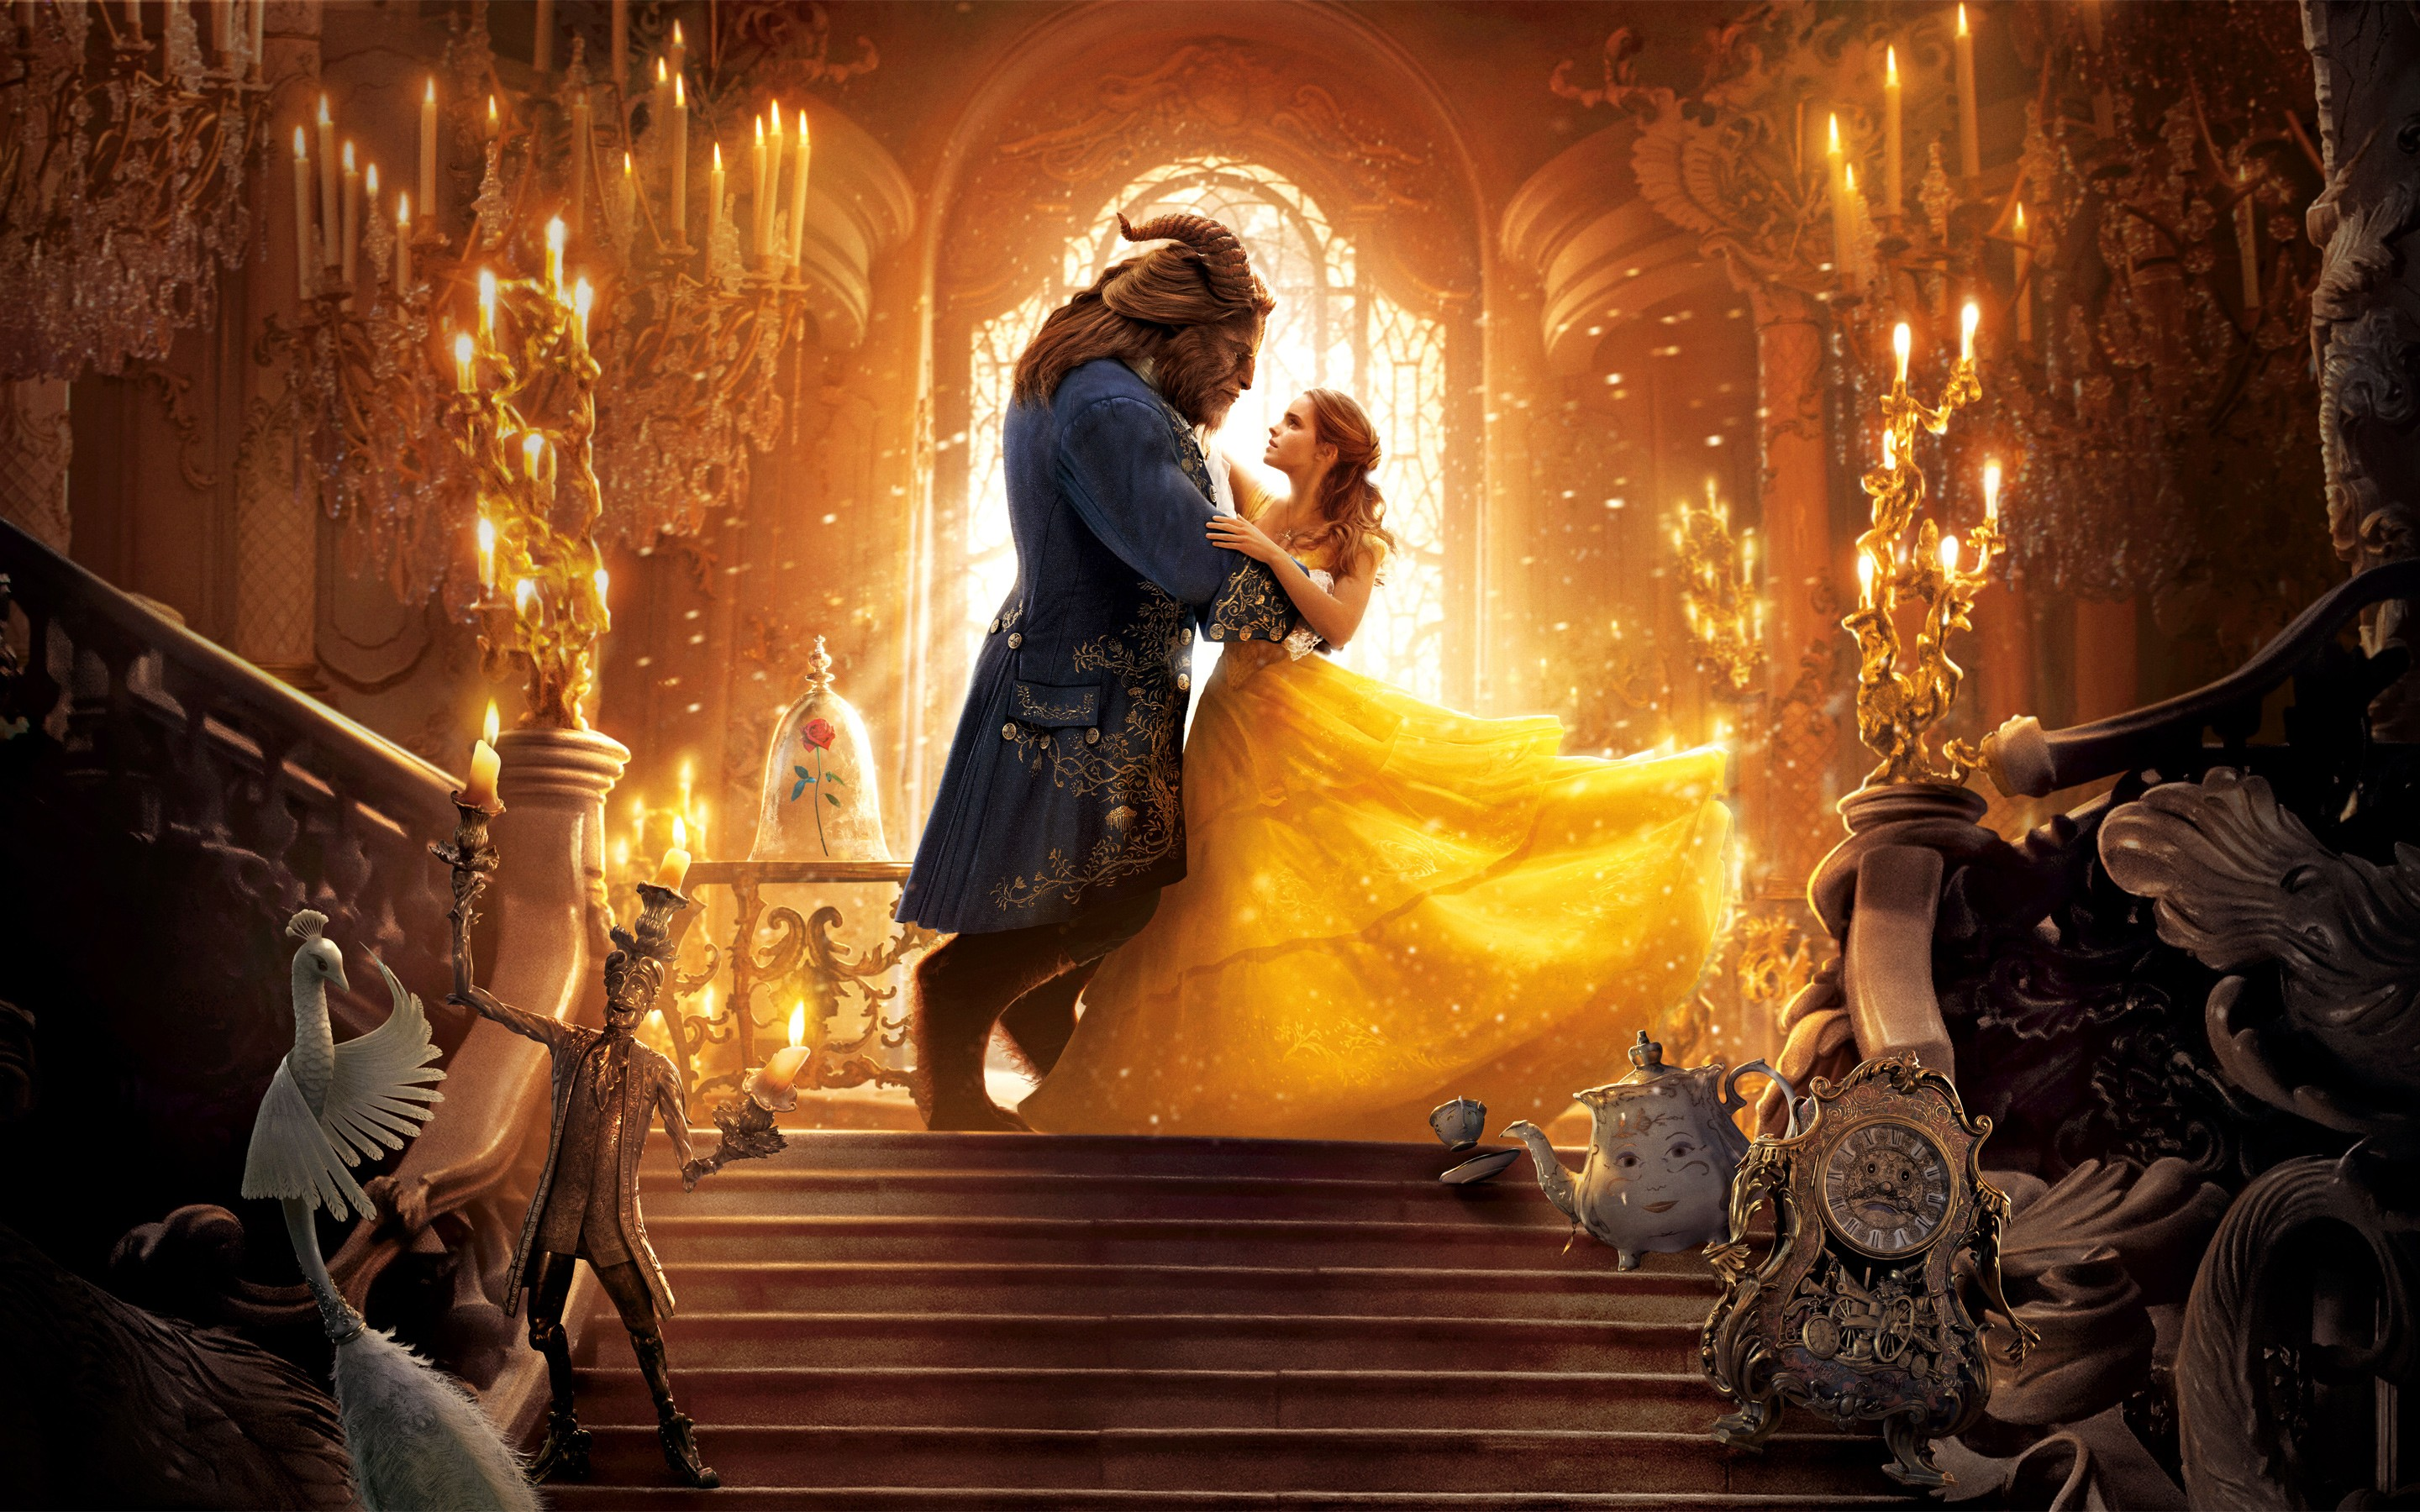 Beauty and the Beast Movie 4K 8K Wallpapers  HD Wallpapers  ID 19769